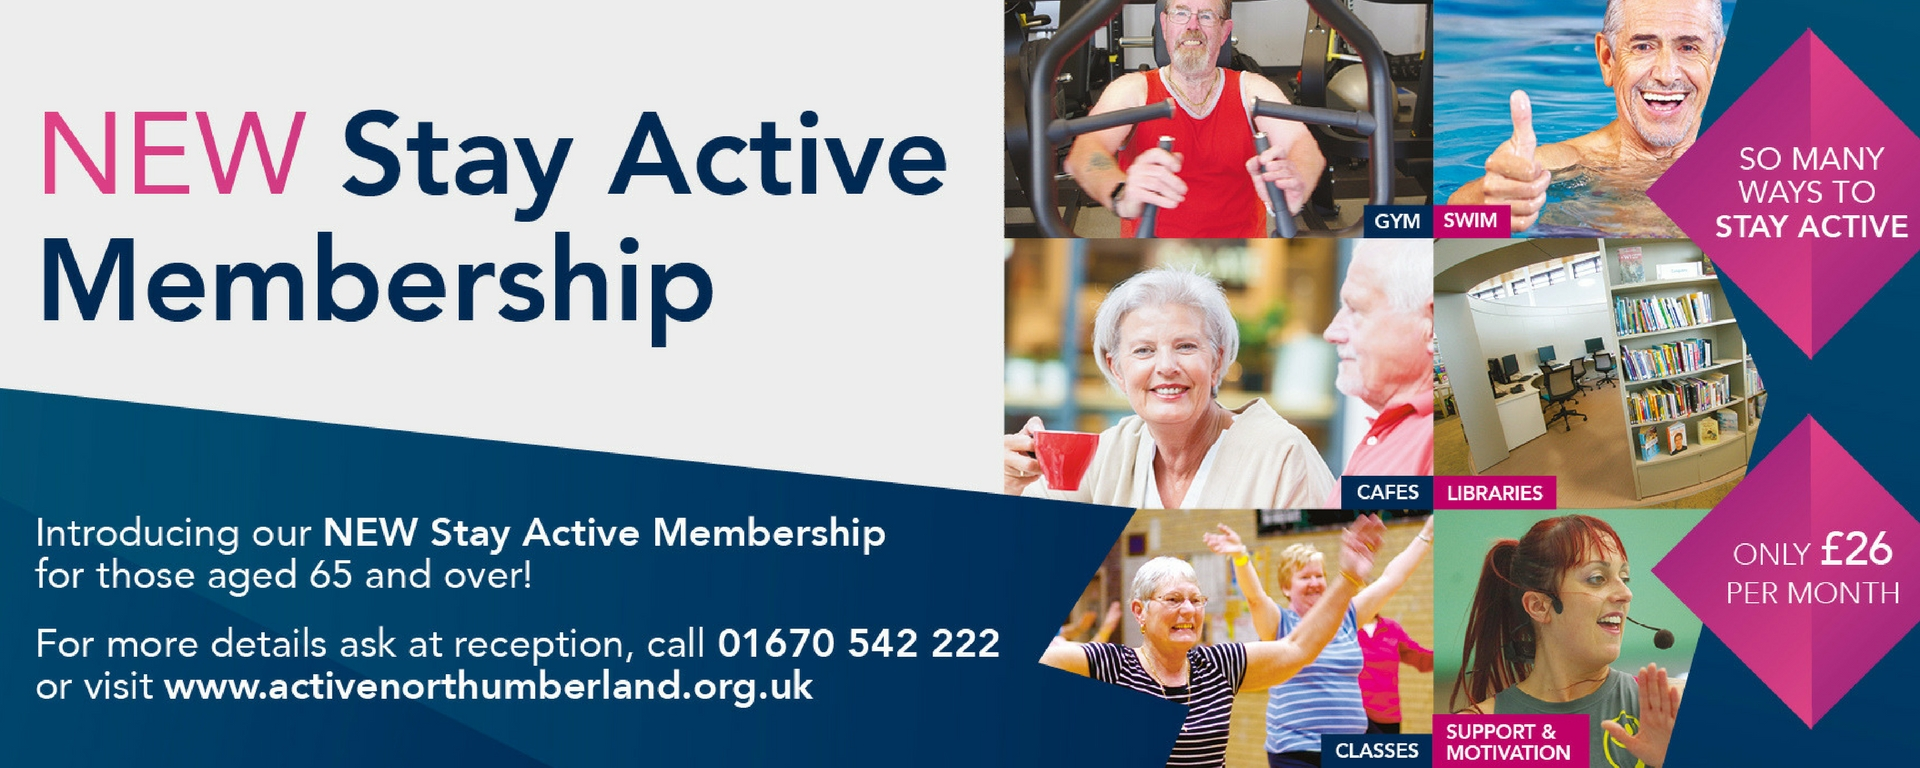 27 - Stay Active Membership